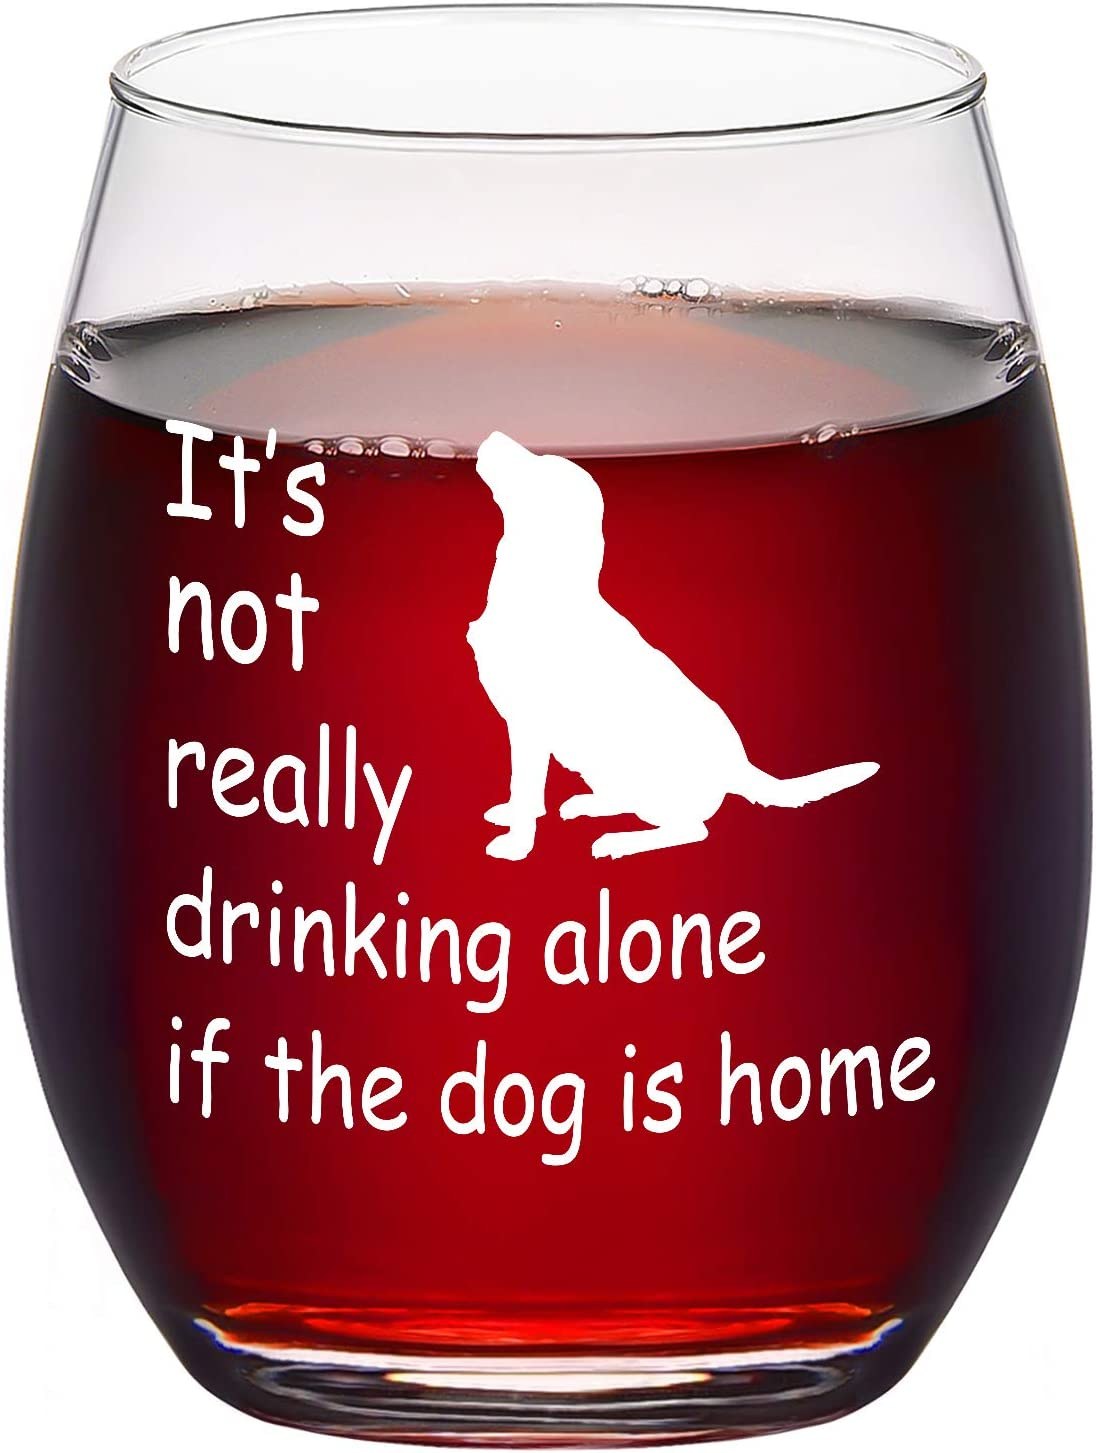 Modwnfy Dog Lover Stemless Wine Glass - It's Not Really Drinking Alone If The Dog Is Home Wine Glass, Dog Lover Gift for Men Women Friend, Funny Dog Gift Idea for Birthday Cheistmas Daily Use, 15Oz